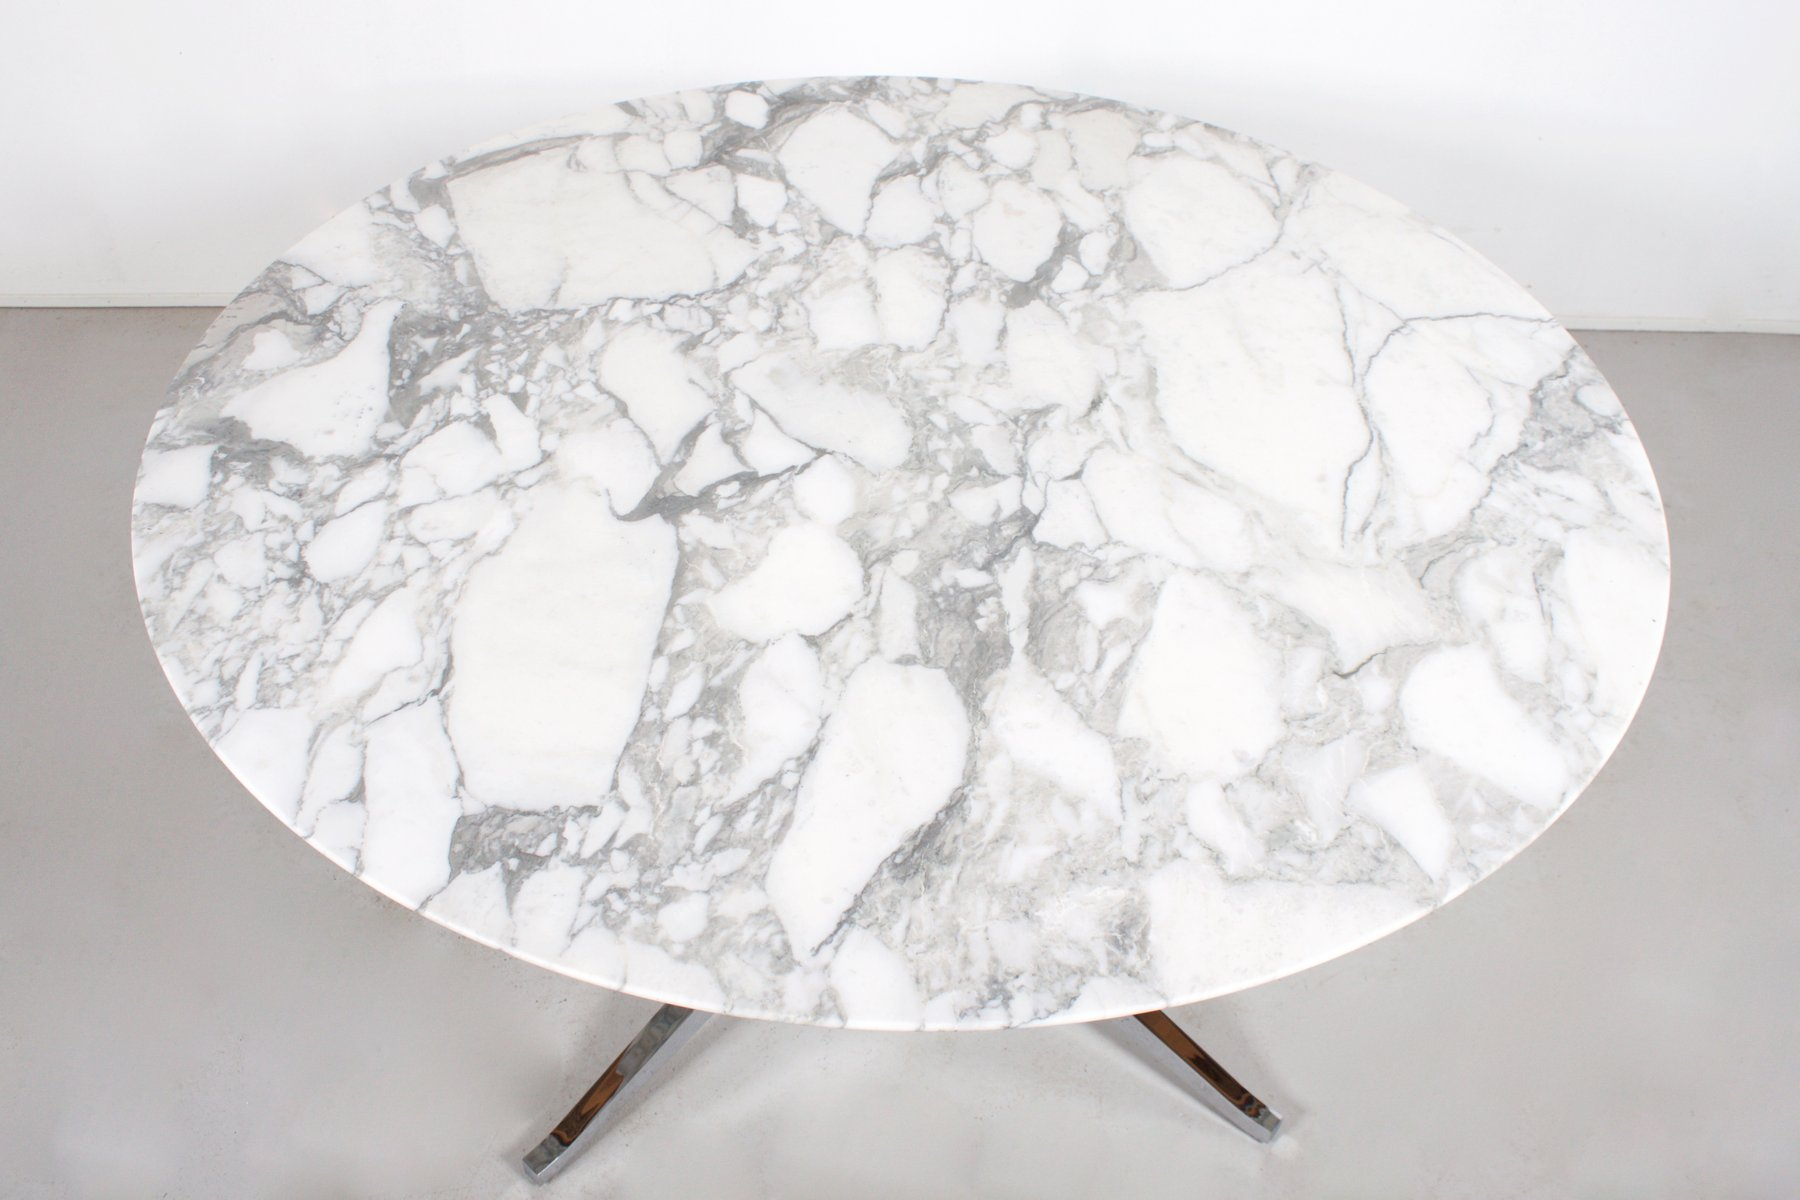 Vintage Round Marble Dining Table By Florence Knoll For International 5 233 00 Price Per Piece